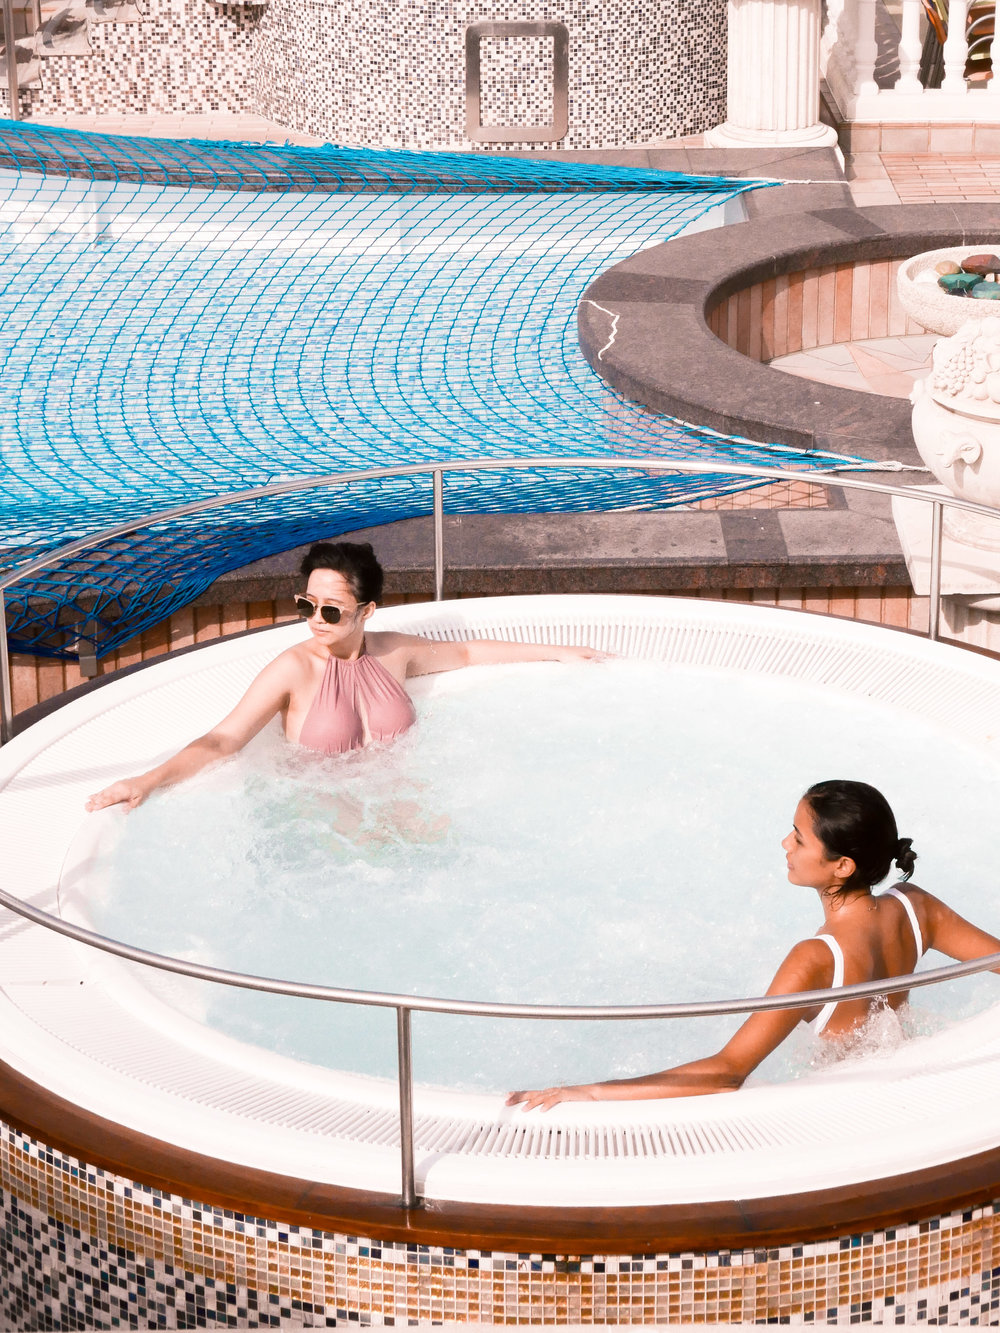 One of our free mornings spent trying out the jacuzzi, which the cruise staffers clean every single day!